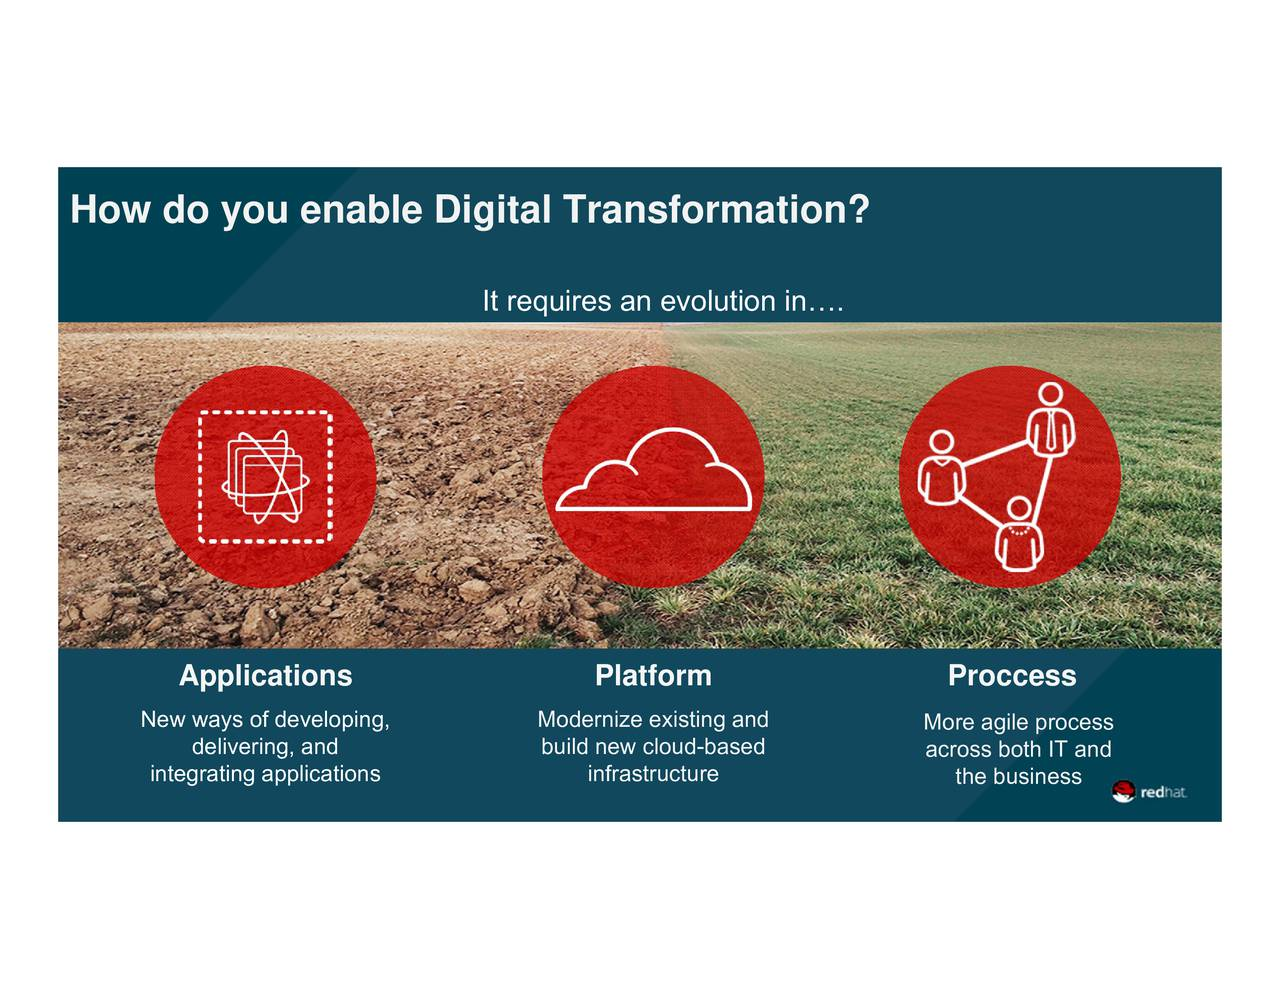 ProcMore agile processnd Platforminfrastructure Modernize existing anded It requires an evolution in. delivering, and Applications New ways of developing,ations How do you enable Digital Transformation?